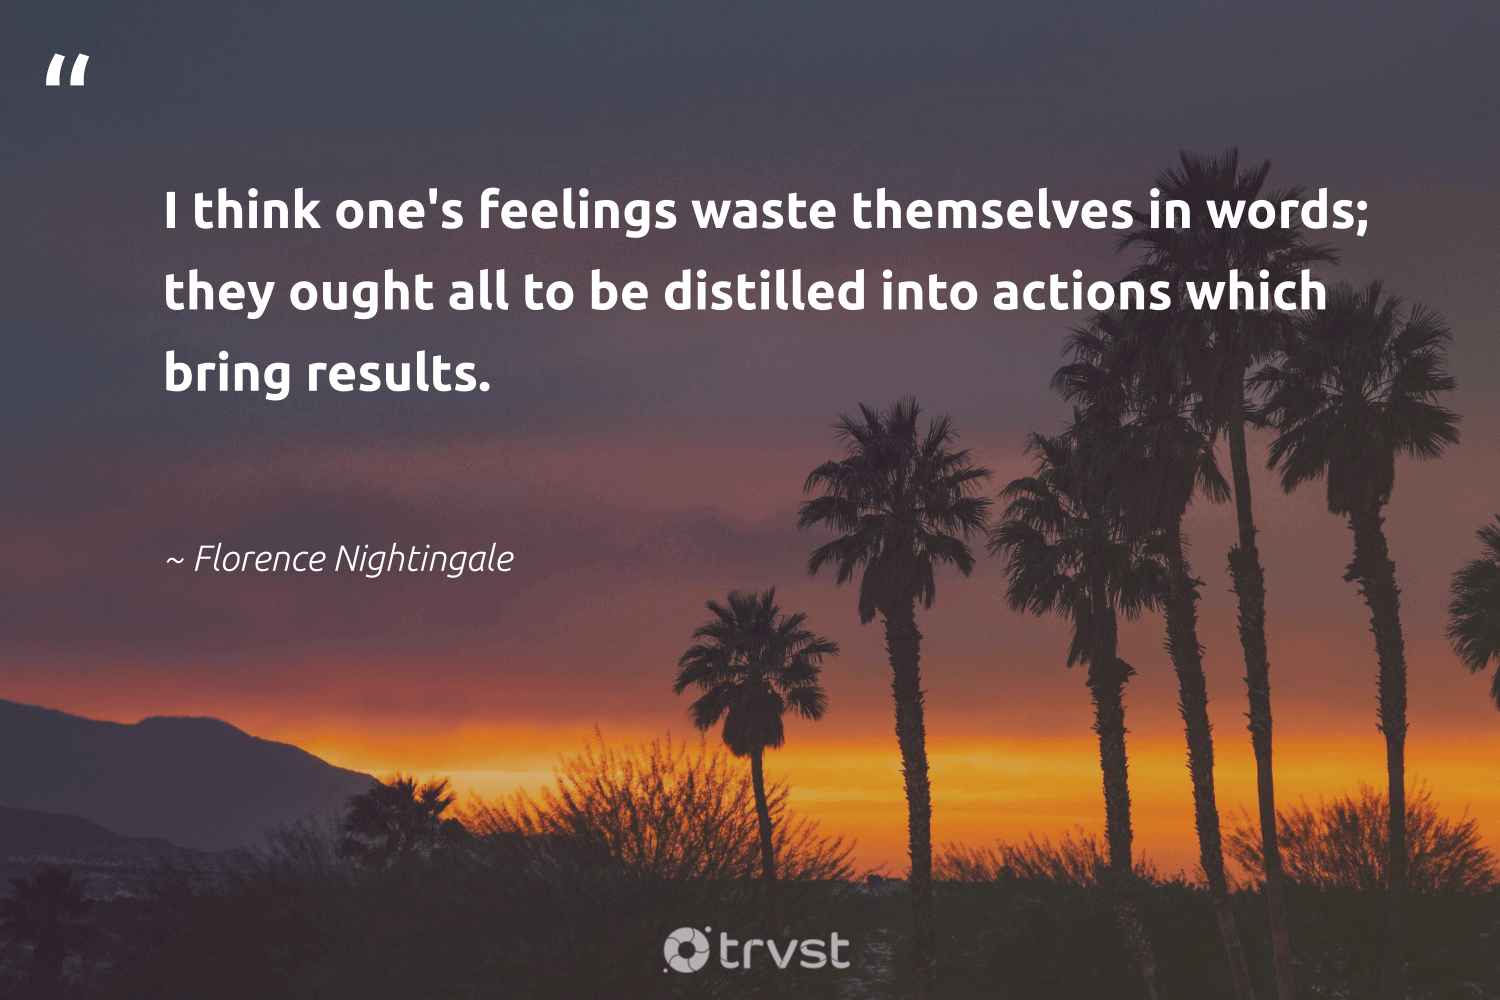 """""""I think one's feelings waste themselves in words; they ought all to be distilled into actions which bring results.""""  - Florence Nightingale #trvst #quotes #waste #results #togetherwecan #dosomething #begreat #impact #health #socialchange #nevergiveup #beinspired"""